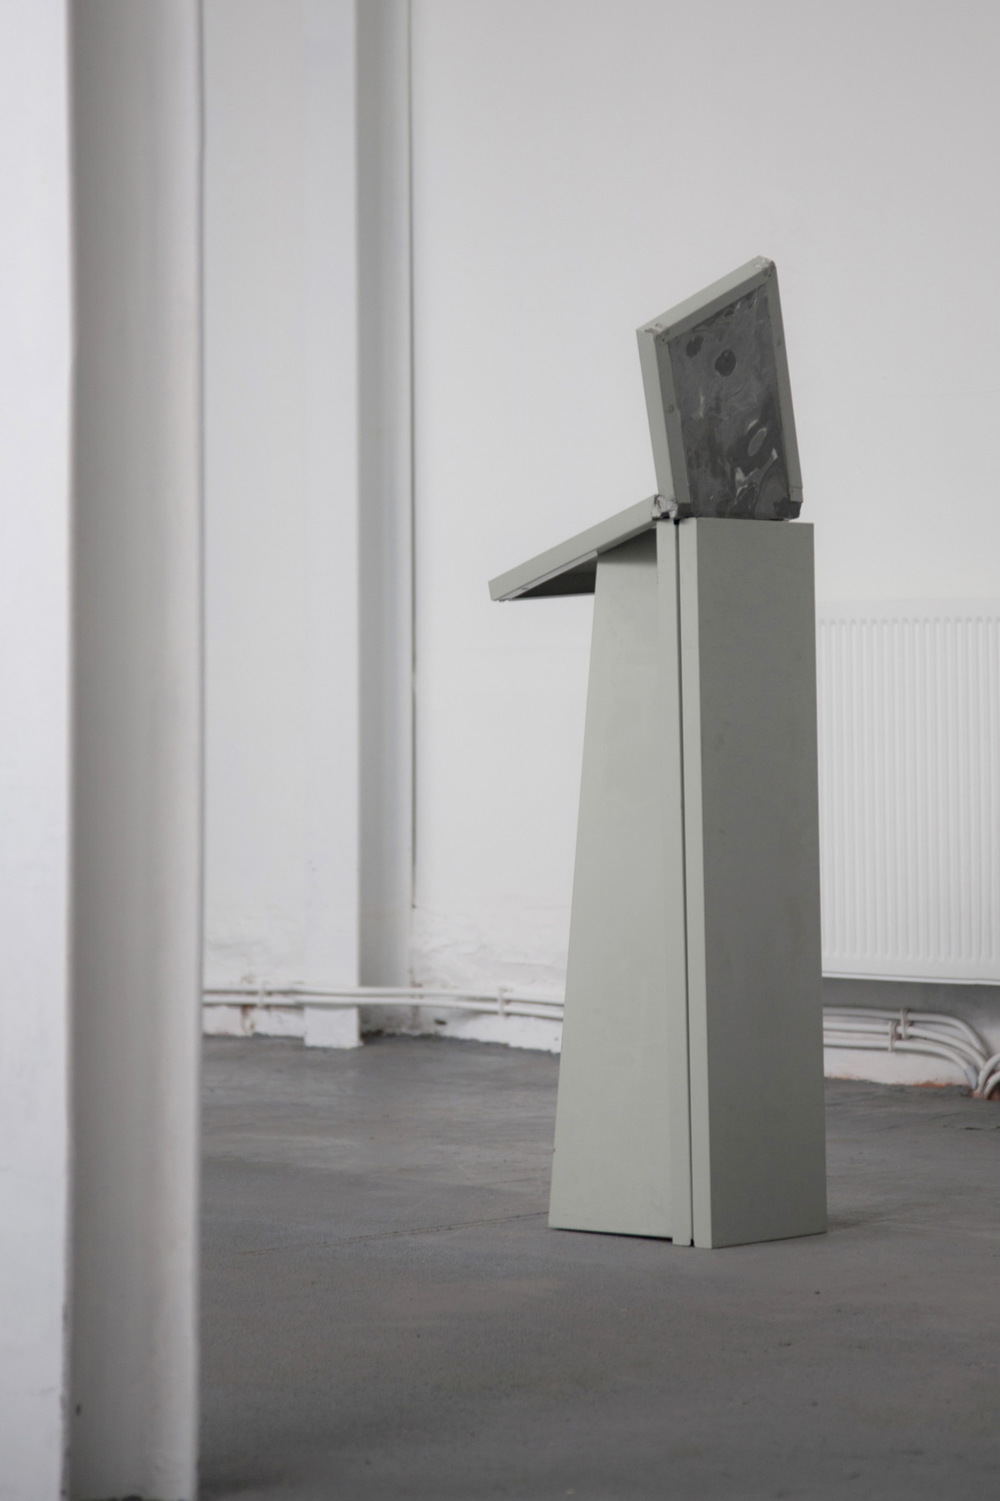 Dennis Ramaekers - Ramaekers, BIN, 2015 (photo by David Van Mieghem)